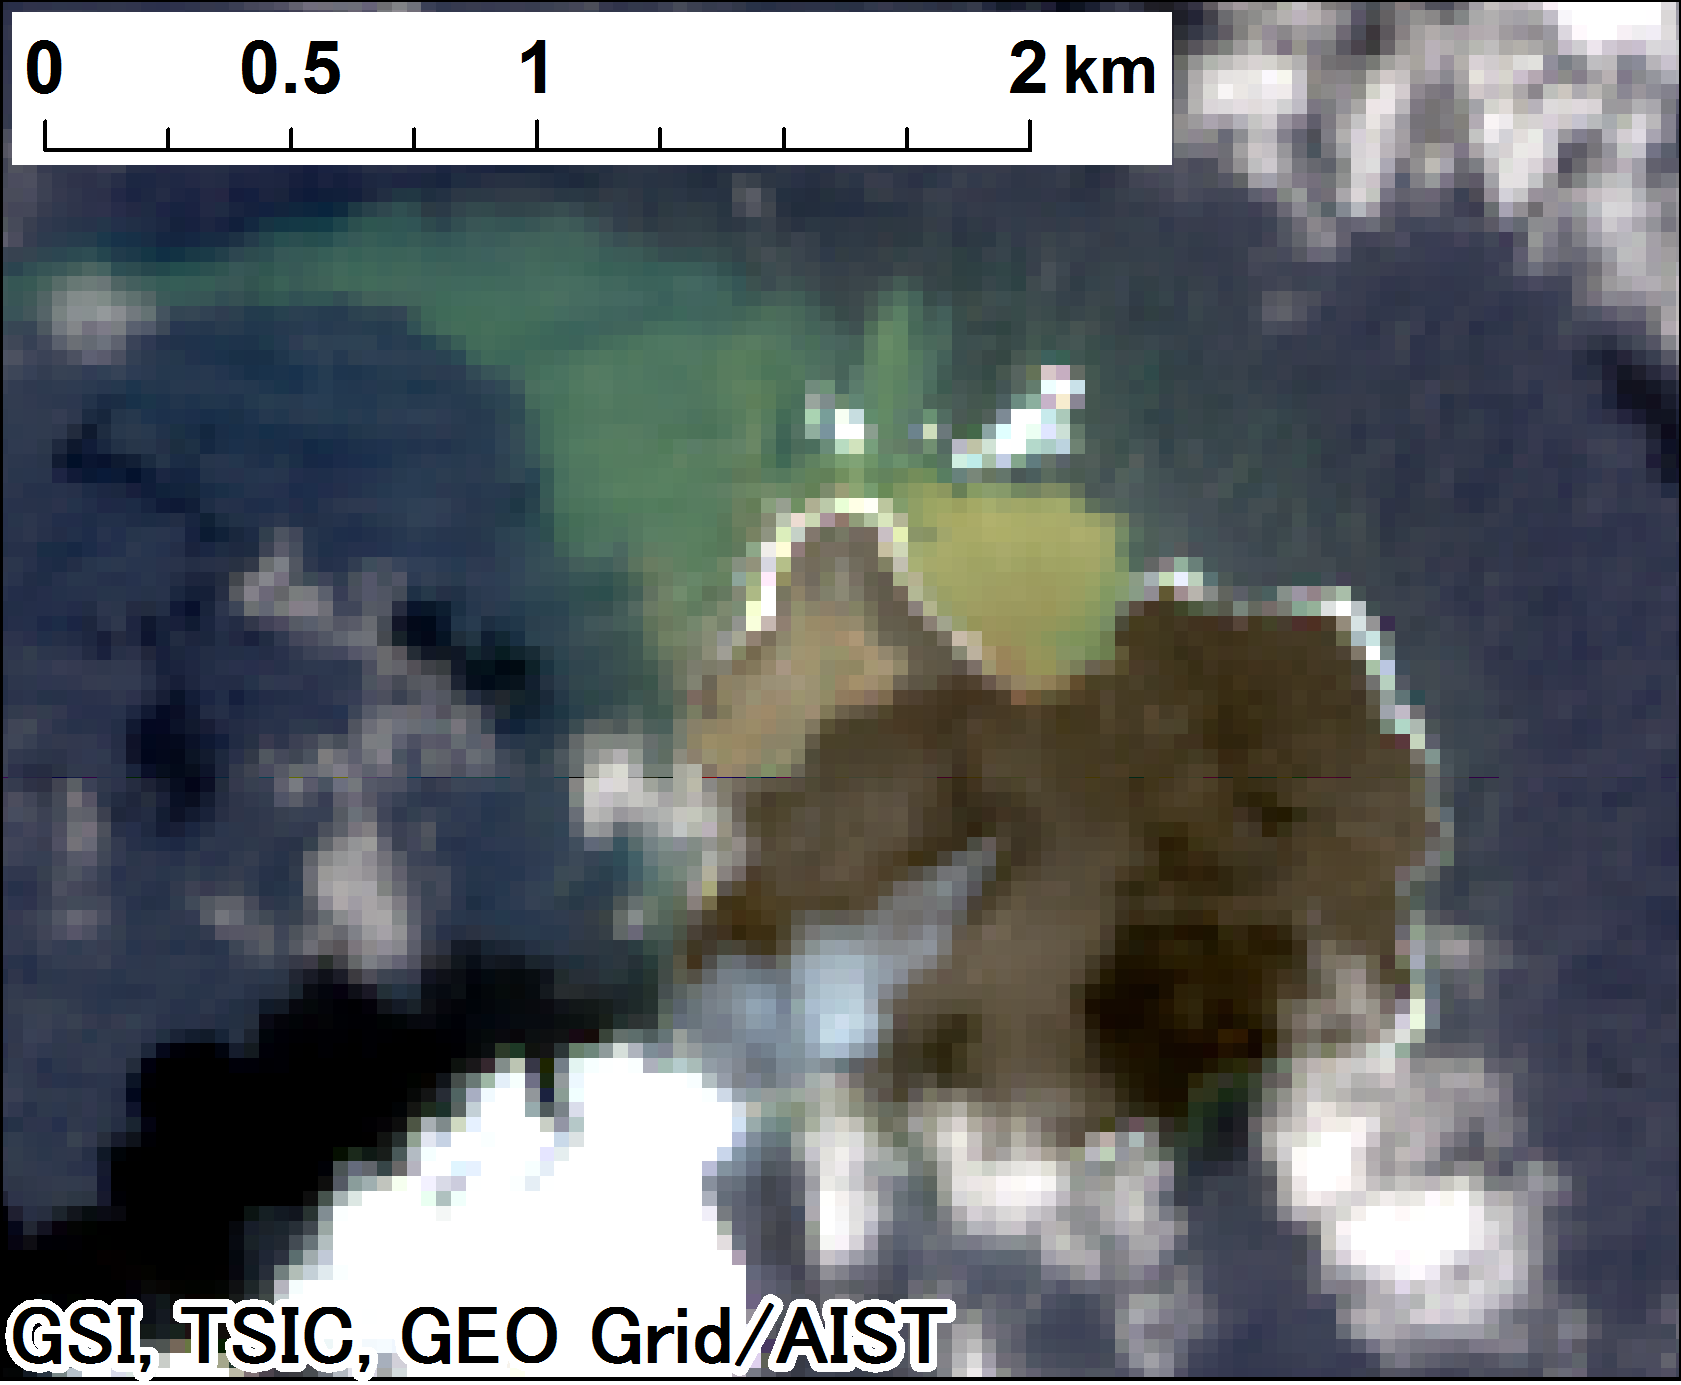 Landsat 8 true-color imagery (2014-09-06)